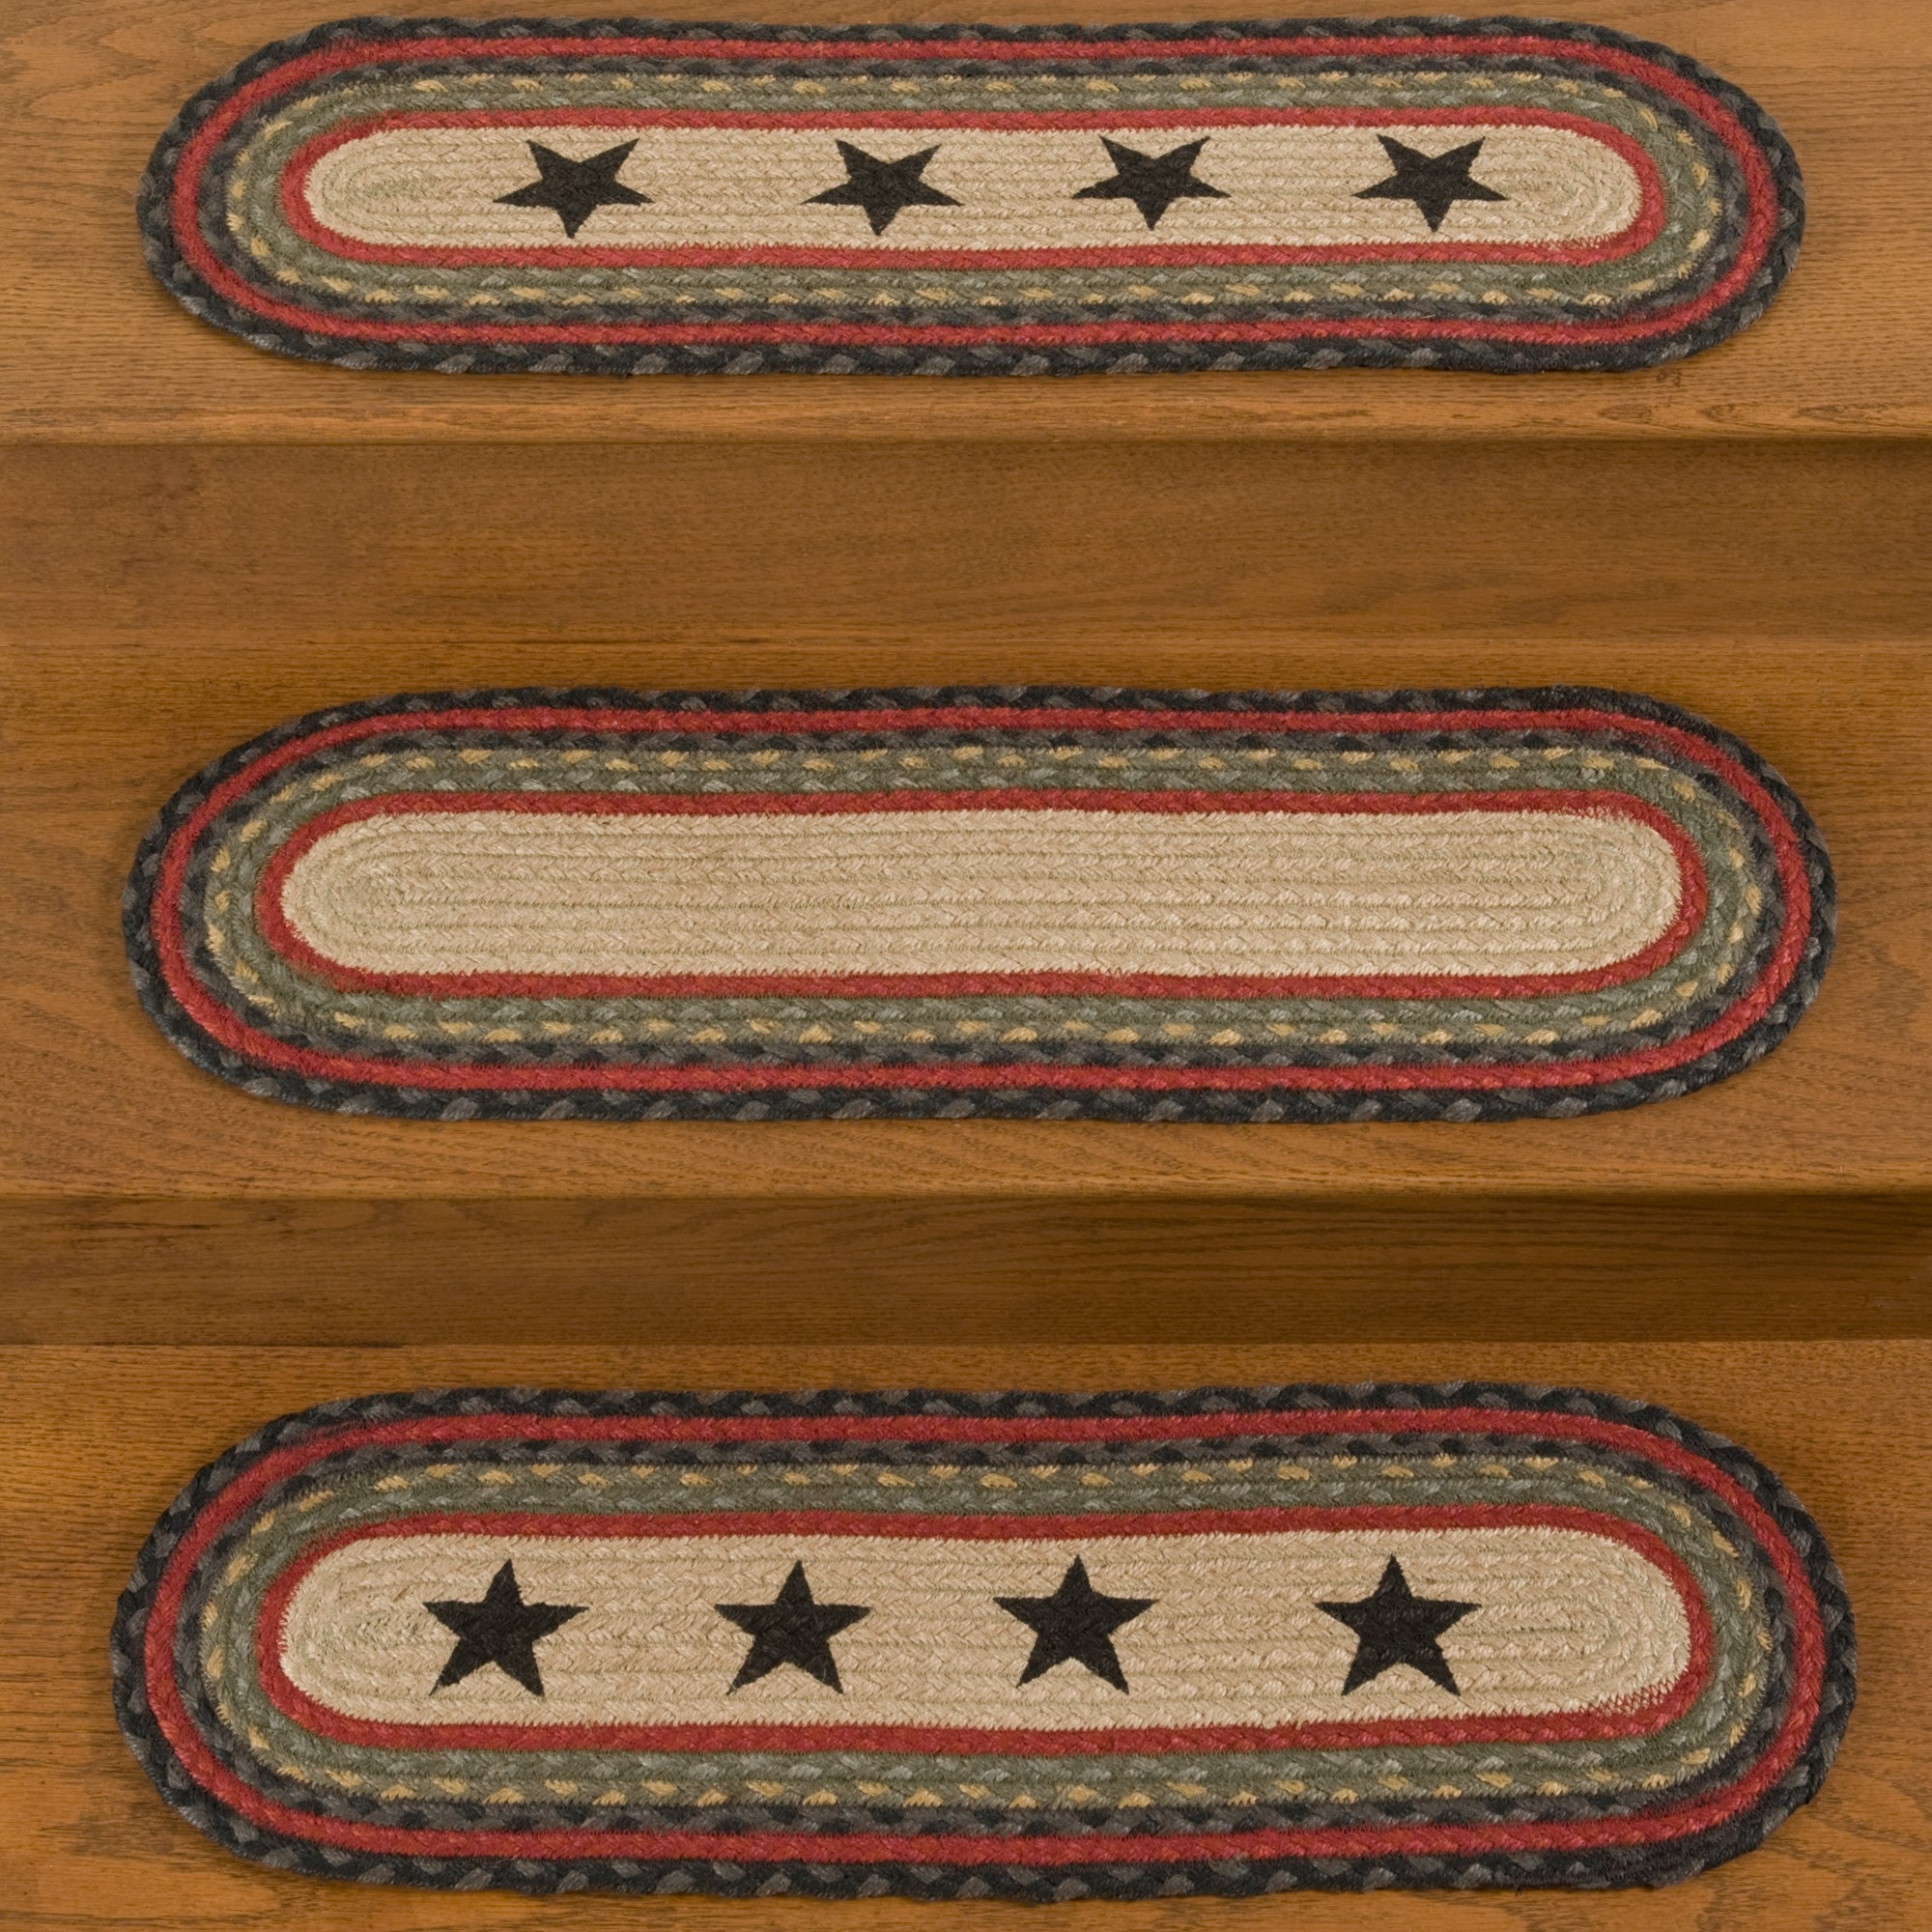 Braided Stair Tread Rugs Roselawnlutheran Within Braided Rug Stair Treads (Image 5 of 15)